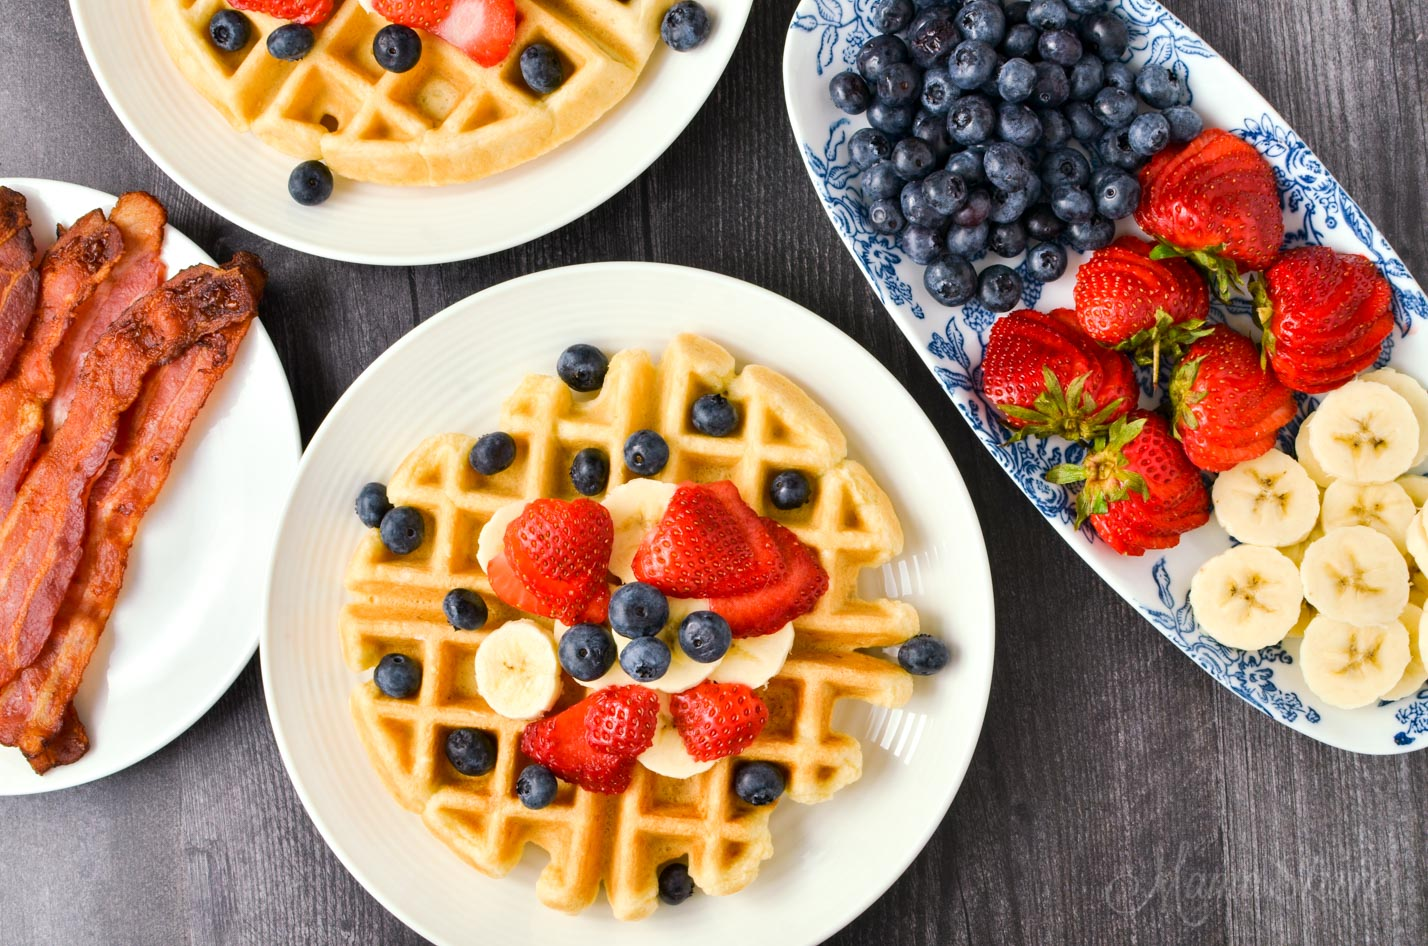 A breakfast buffet with waffles, bacon, and fruit.